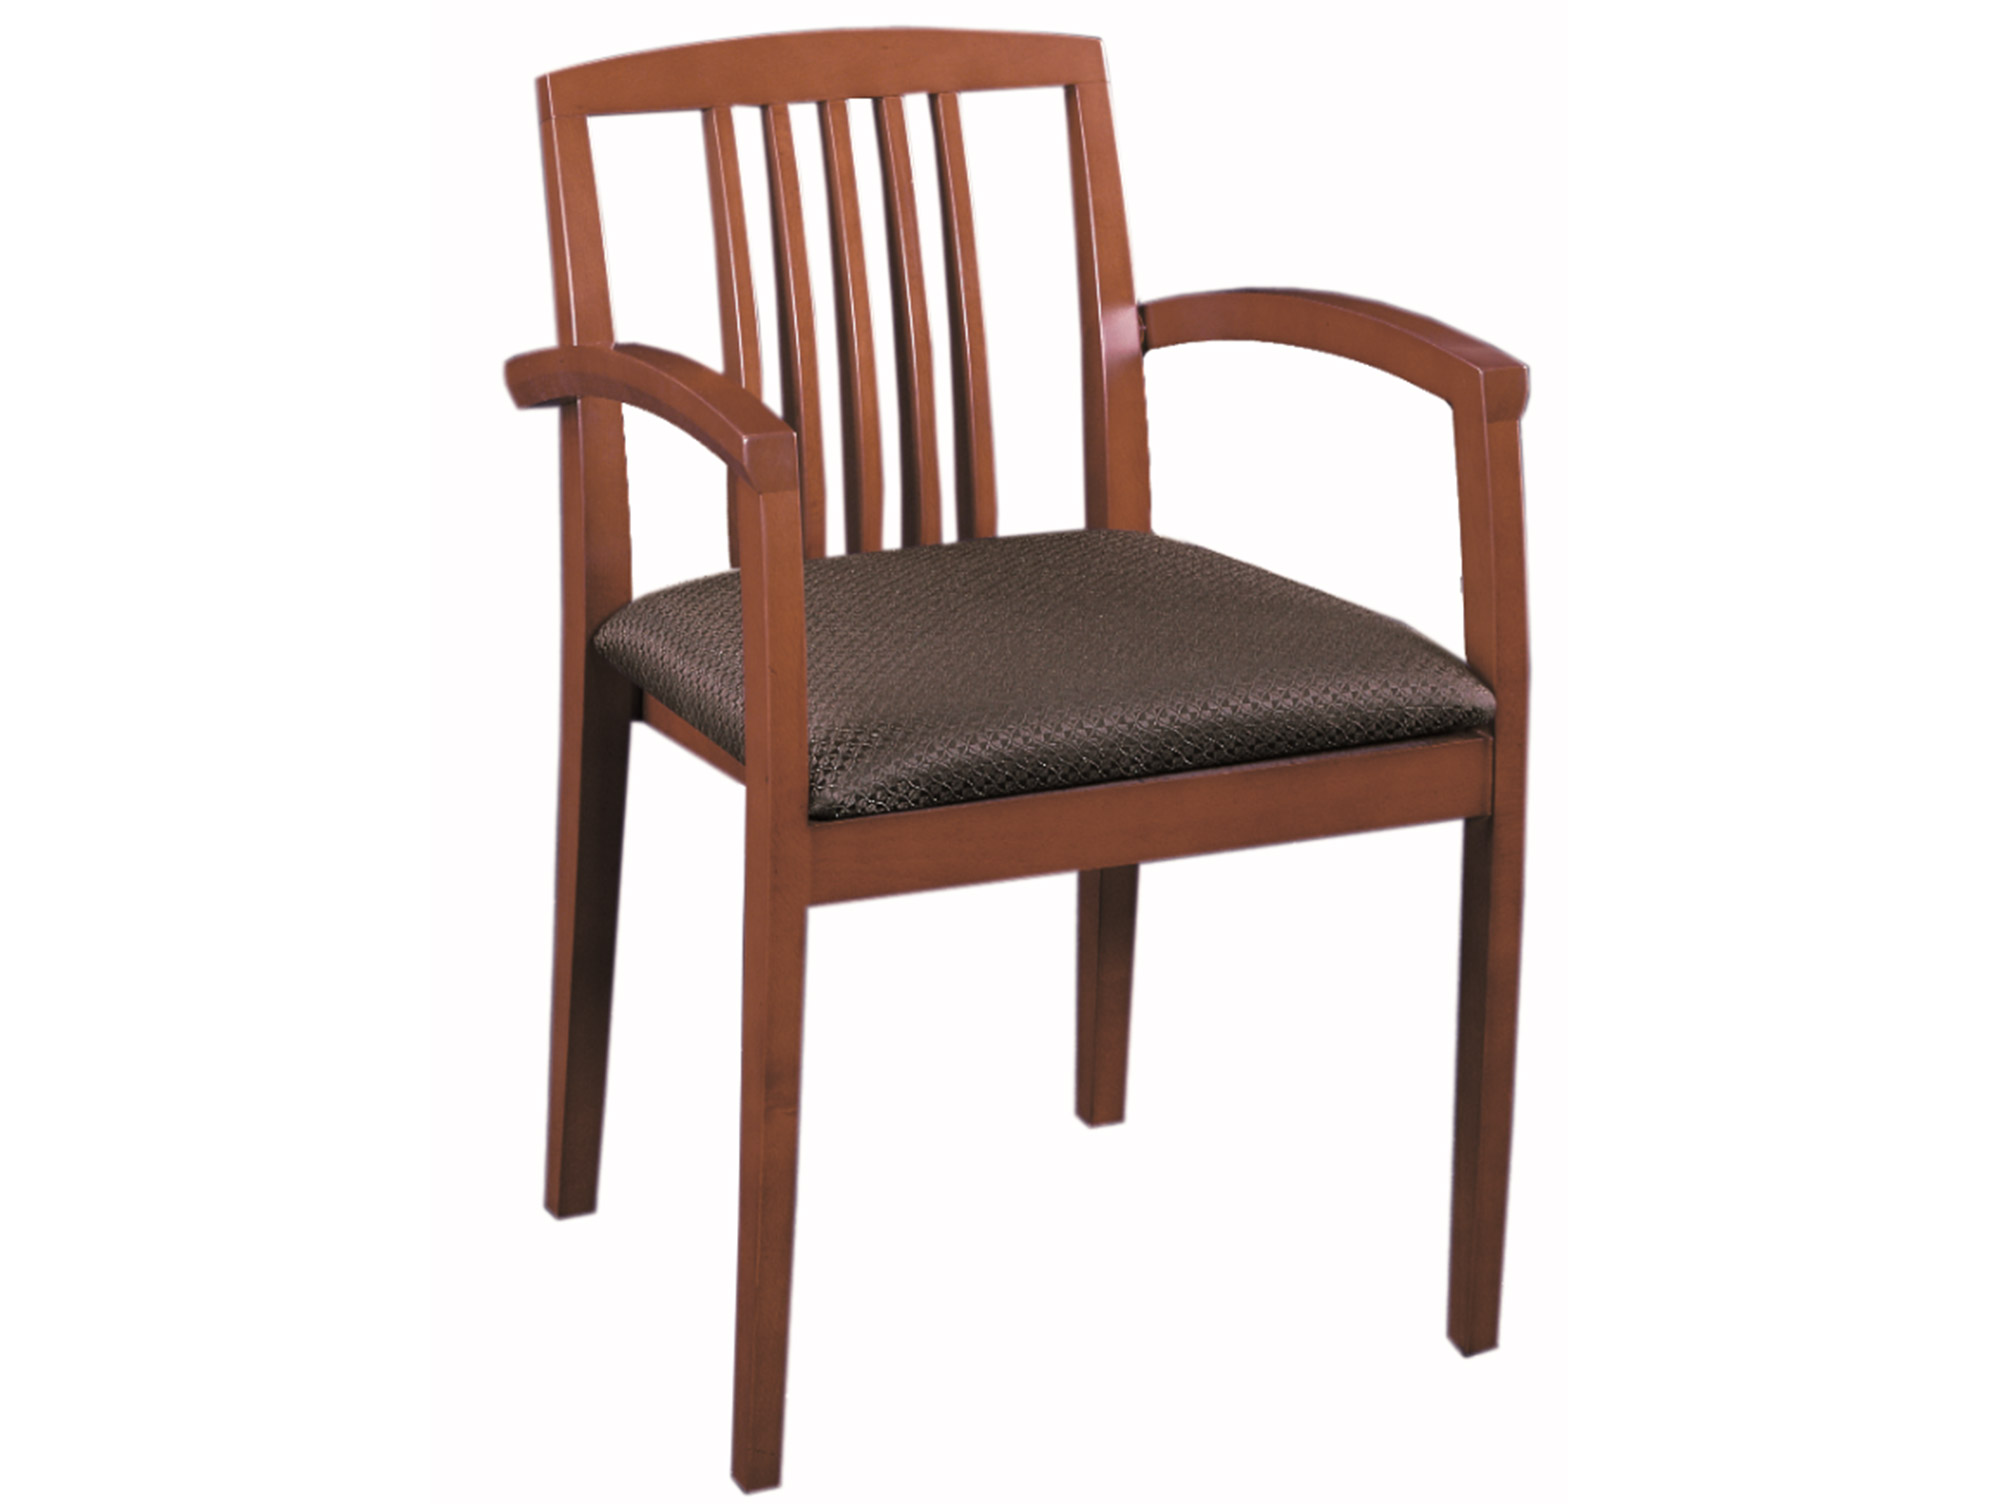 wooden office chairs - office visitor chairs - chairs for office